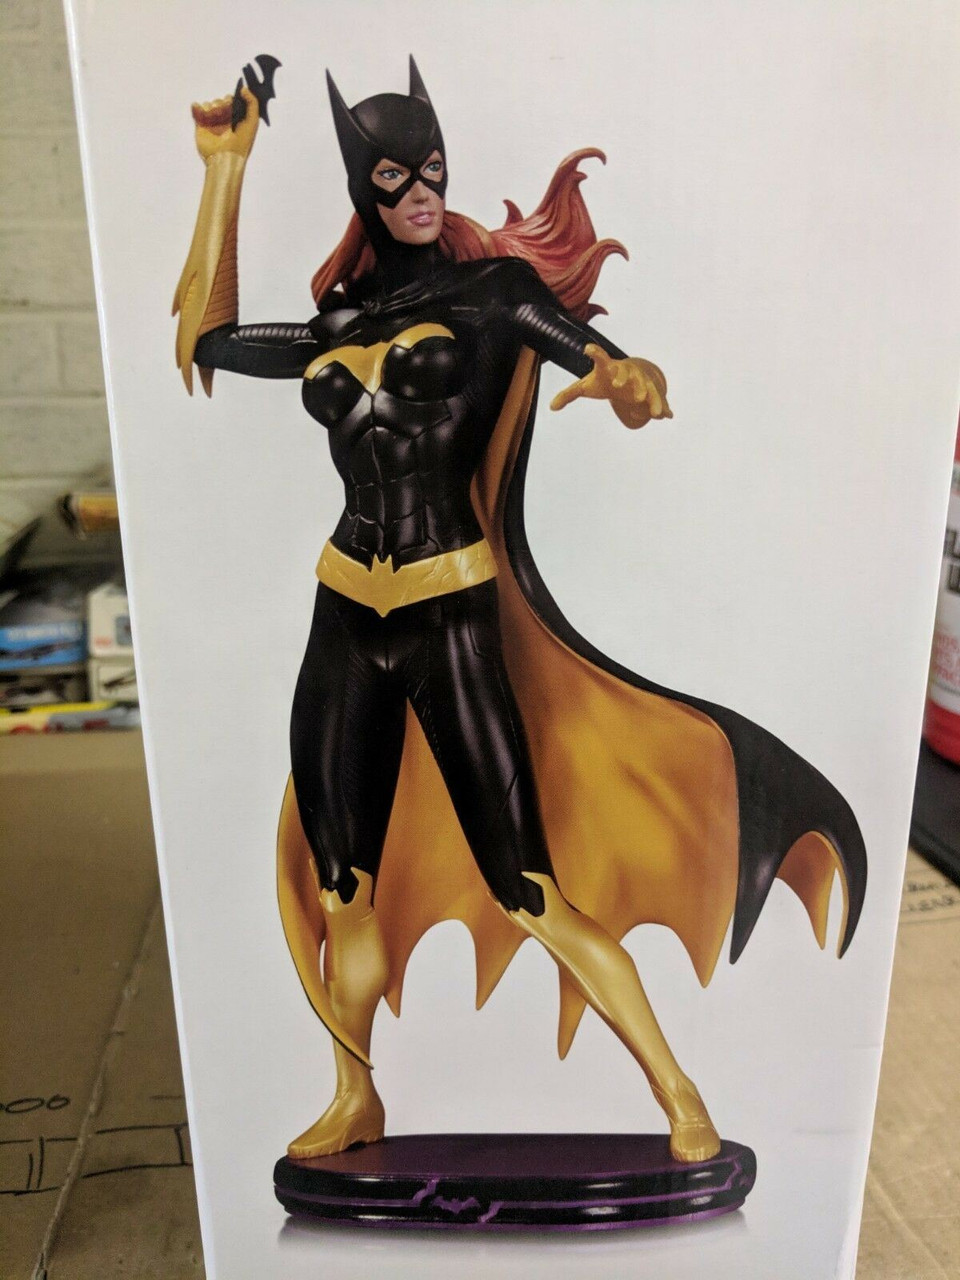 RARE OOP DC Heroes Cover Girls Comics Batgirl Statue Limited Edition 1258 / 5200